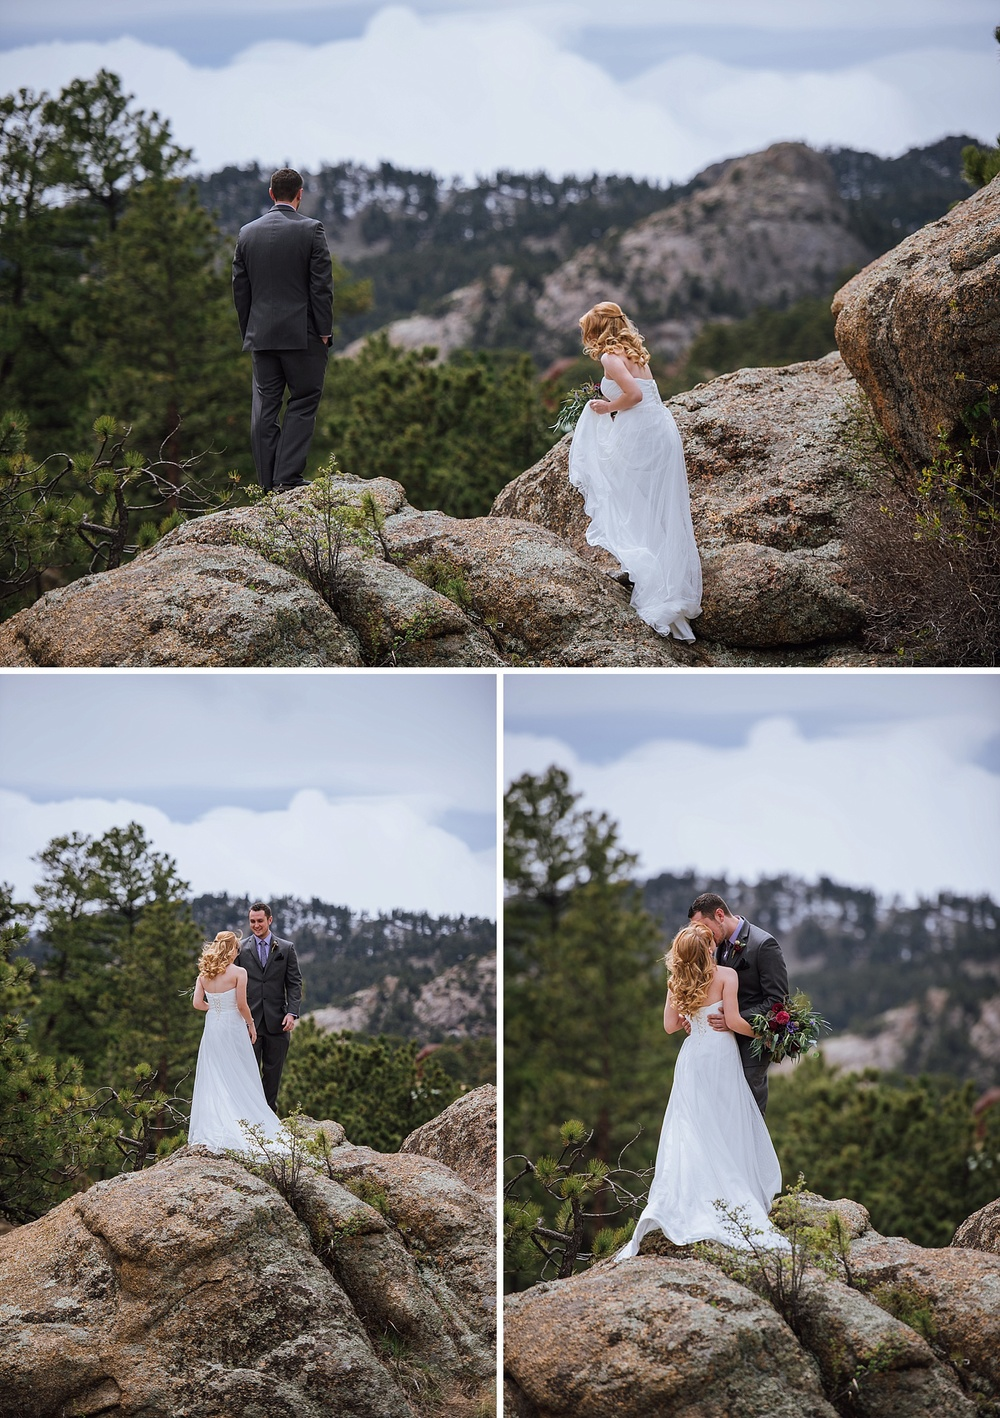 Having your first look on top of a boulder in the mountains is such a good photo op. I really want to go get married in Rocky Mountain National Park! Photo by Maddie Mae Photography